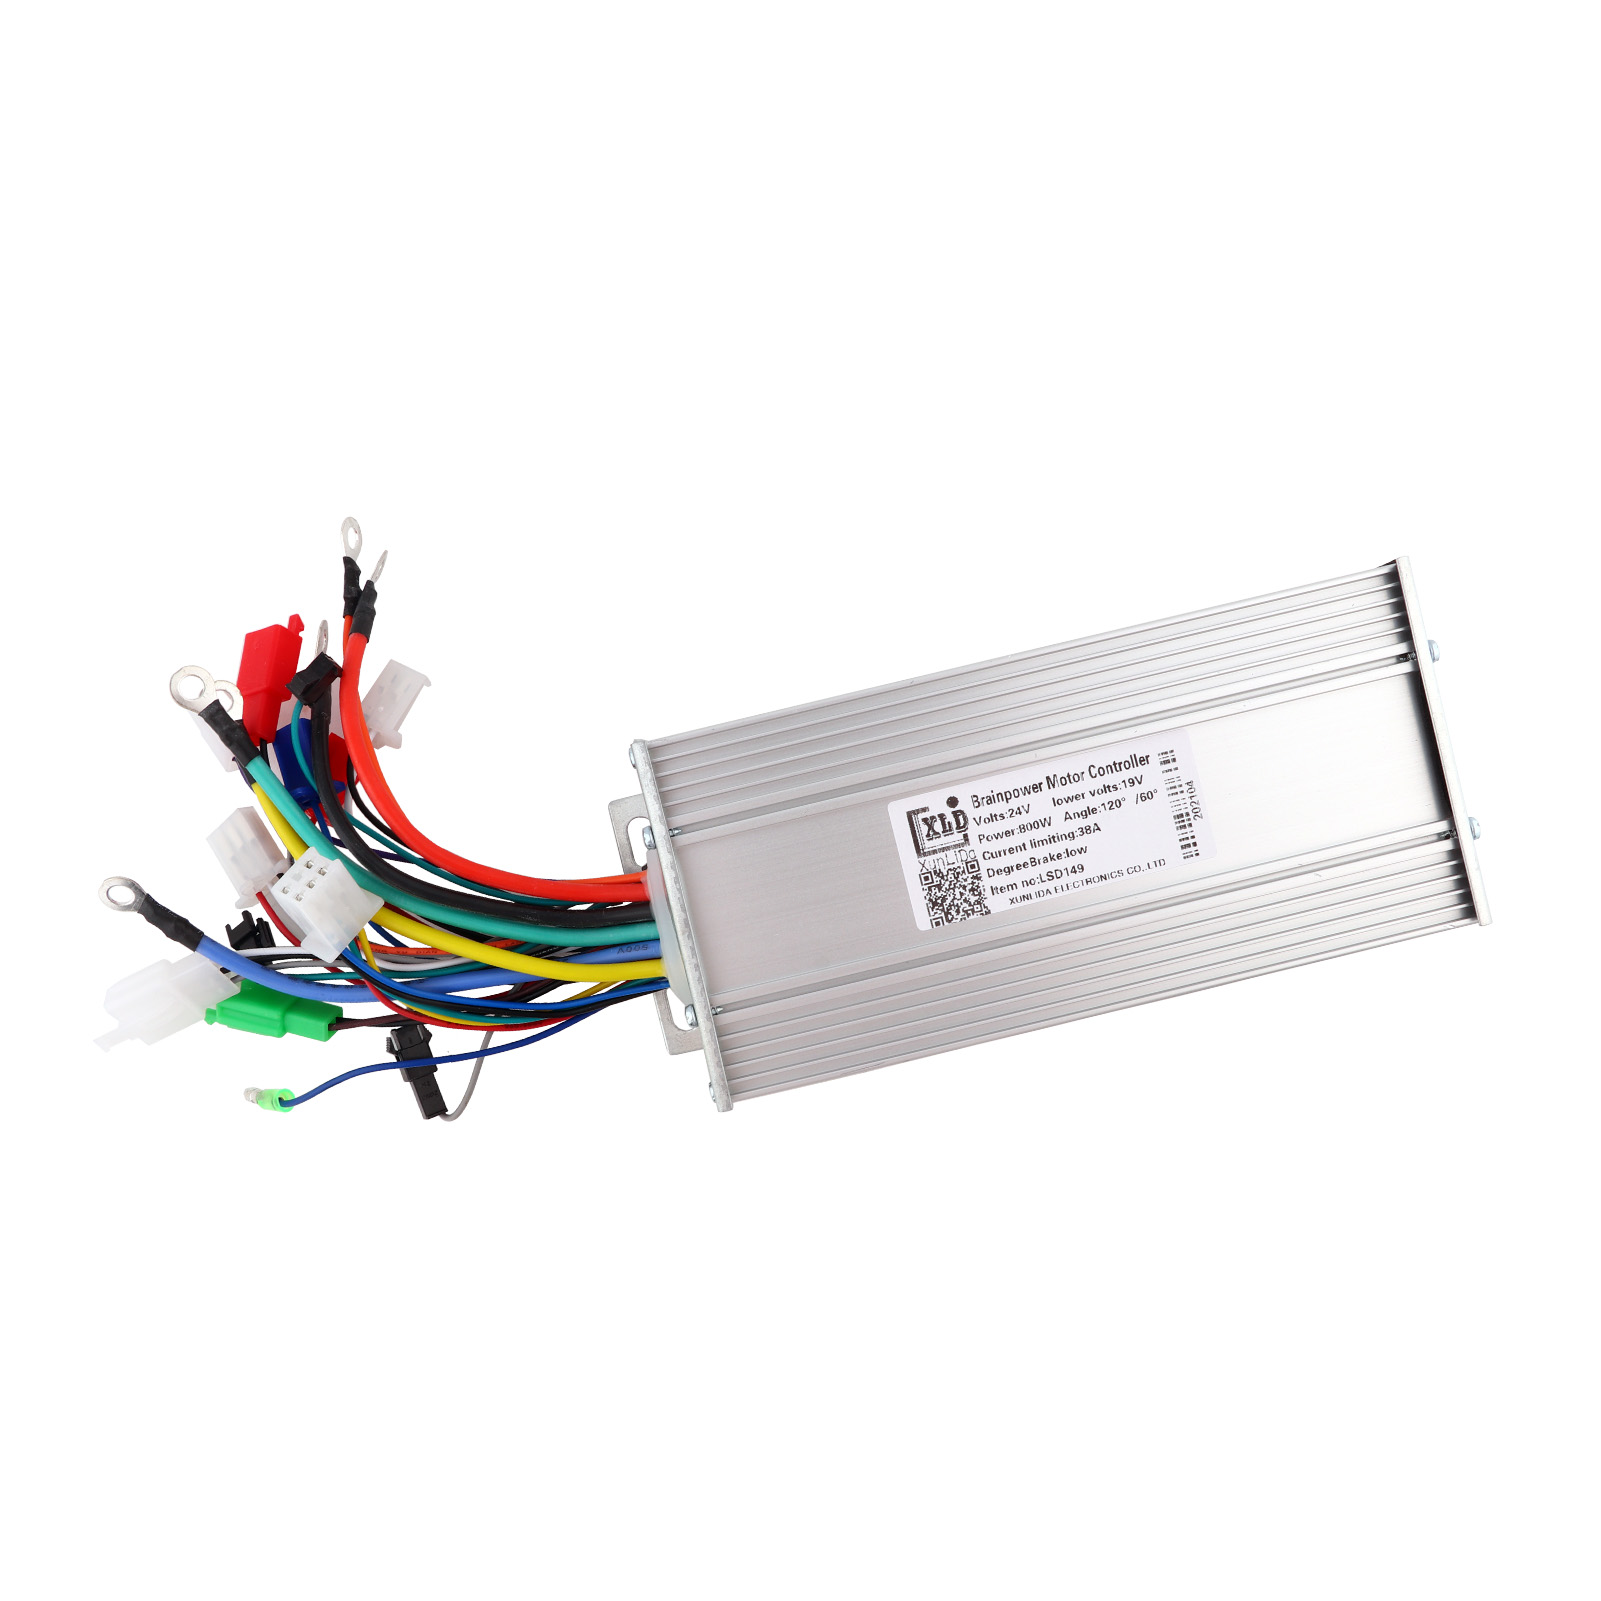 24-36-48V-800W-Brushless-Motor-Speed-Controller-Electric-Bicycle-E-bike-Scooter thumbnail 15